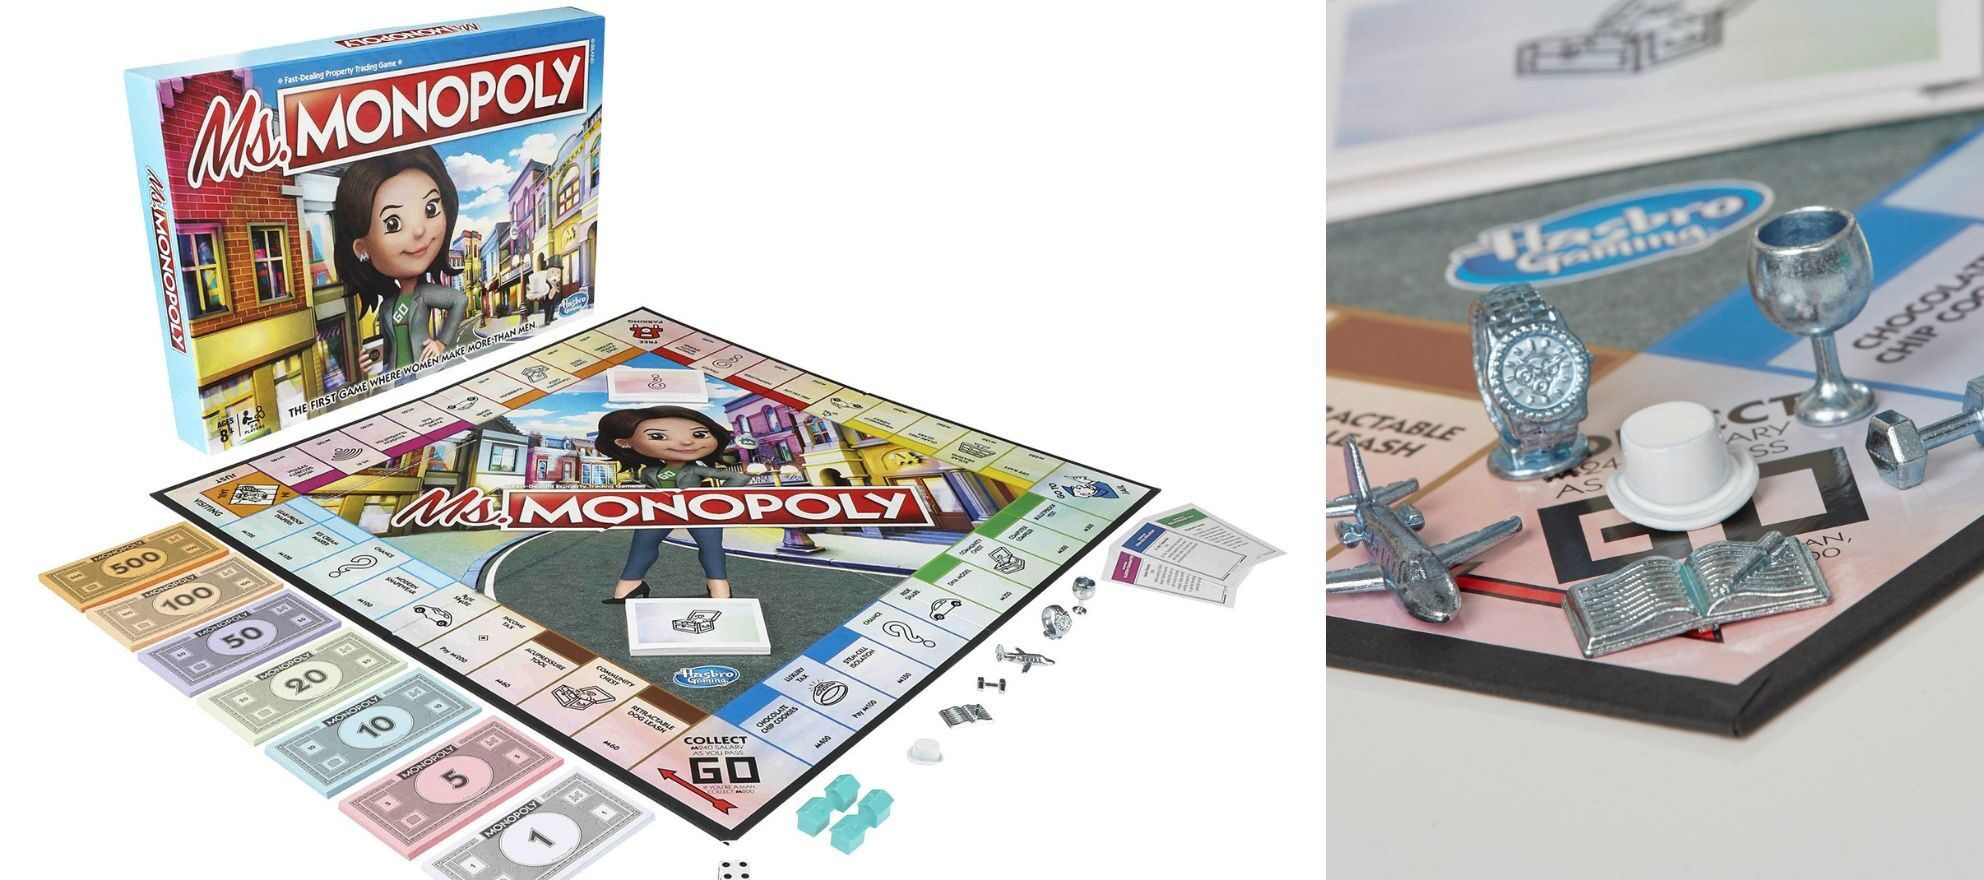 Monopoly's new game: Collecting inventions from women, not real estate